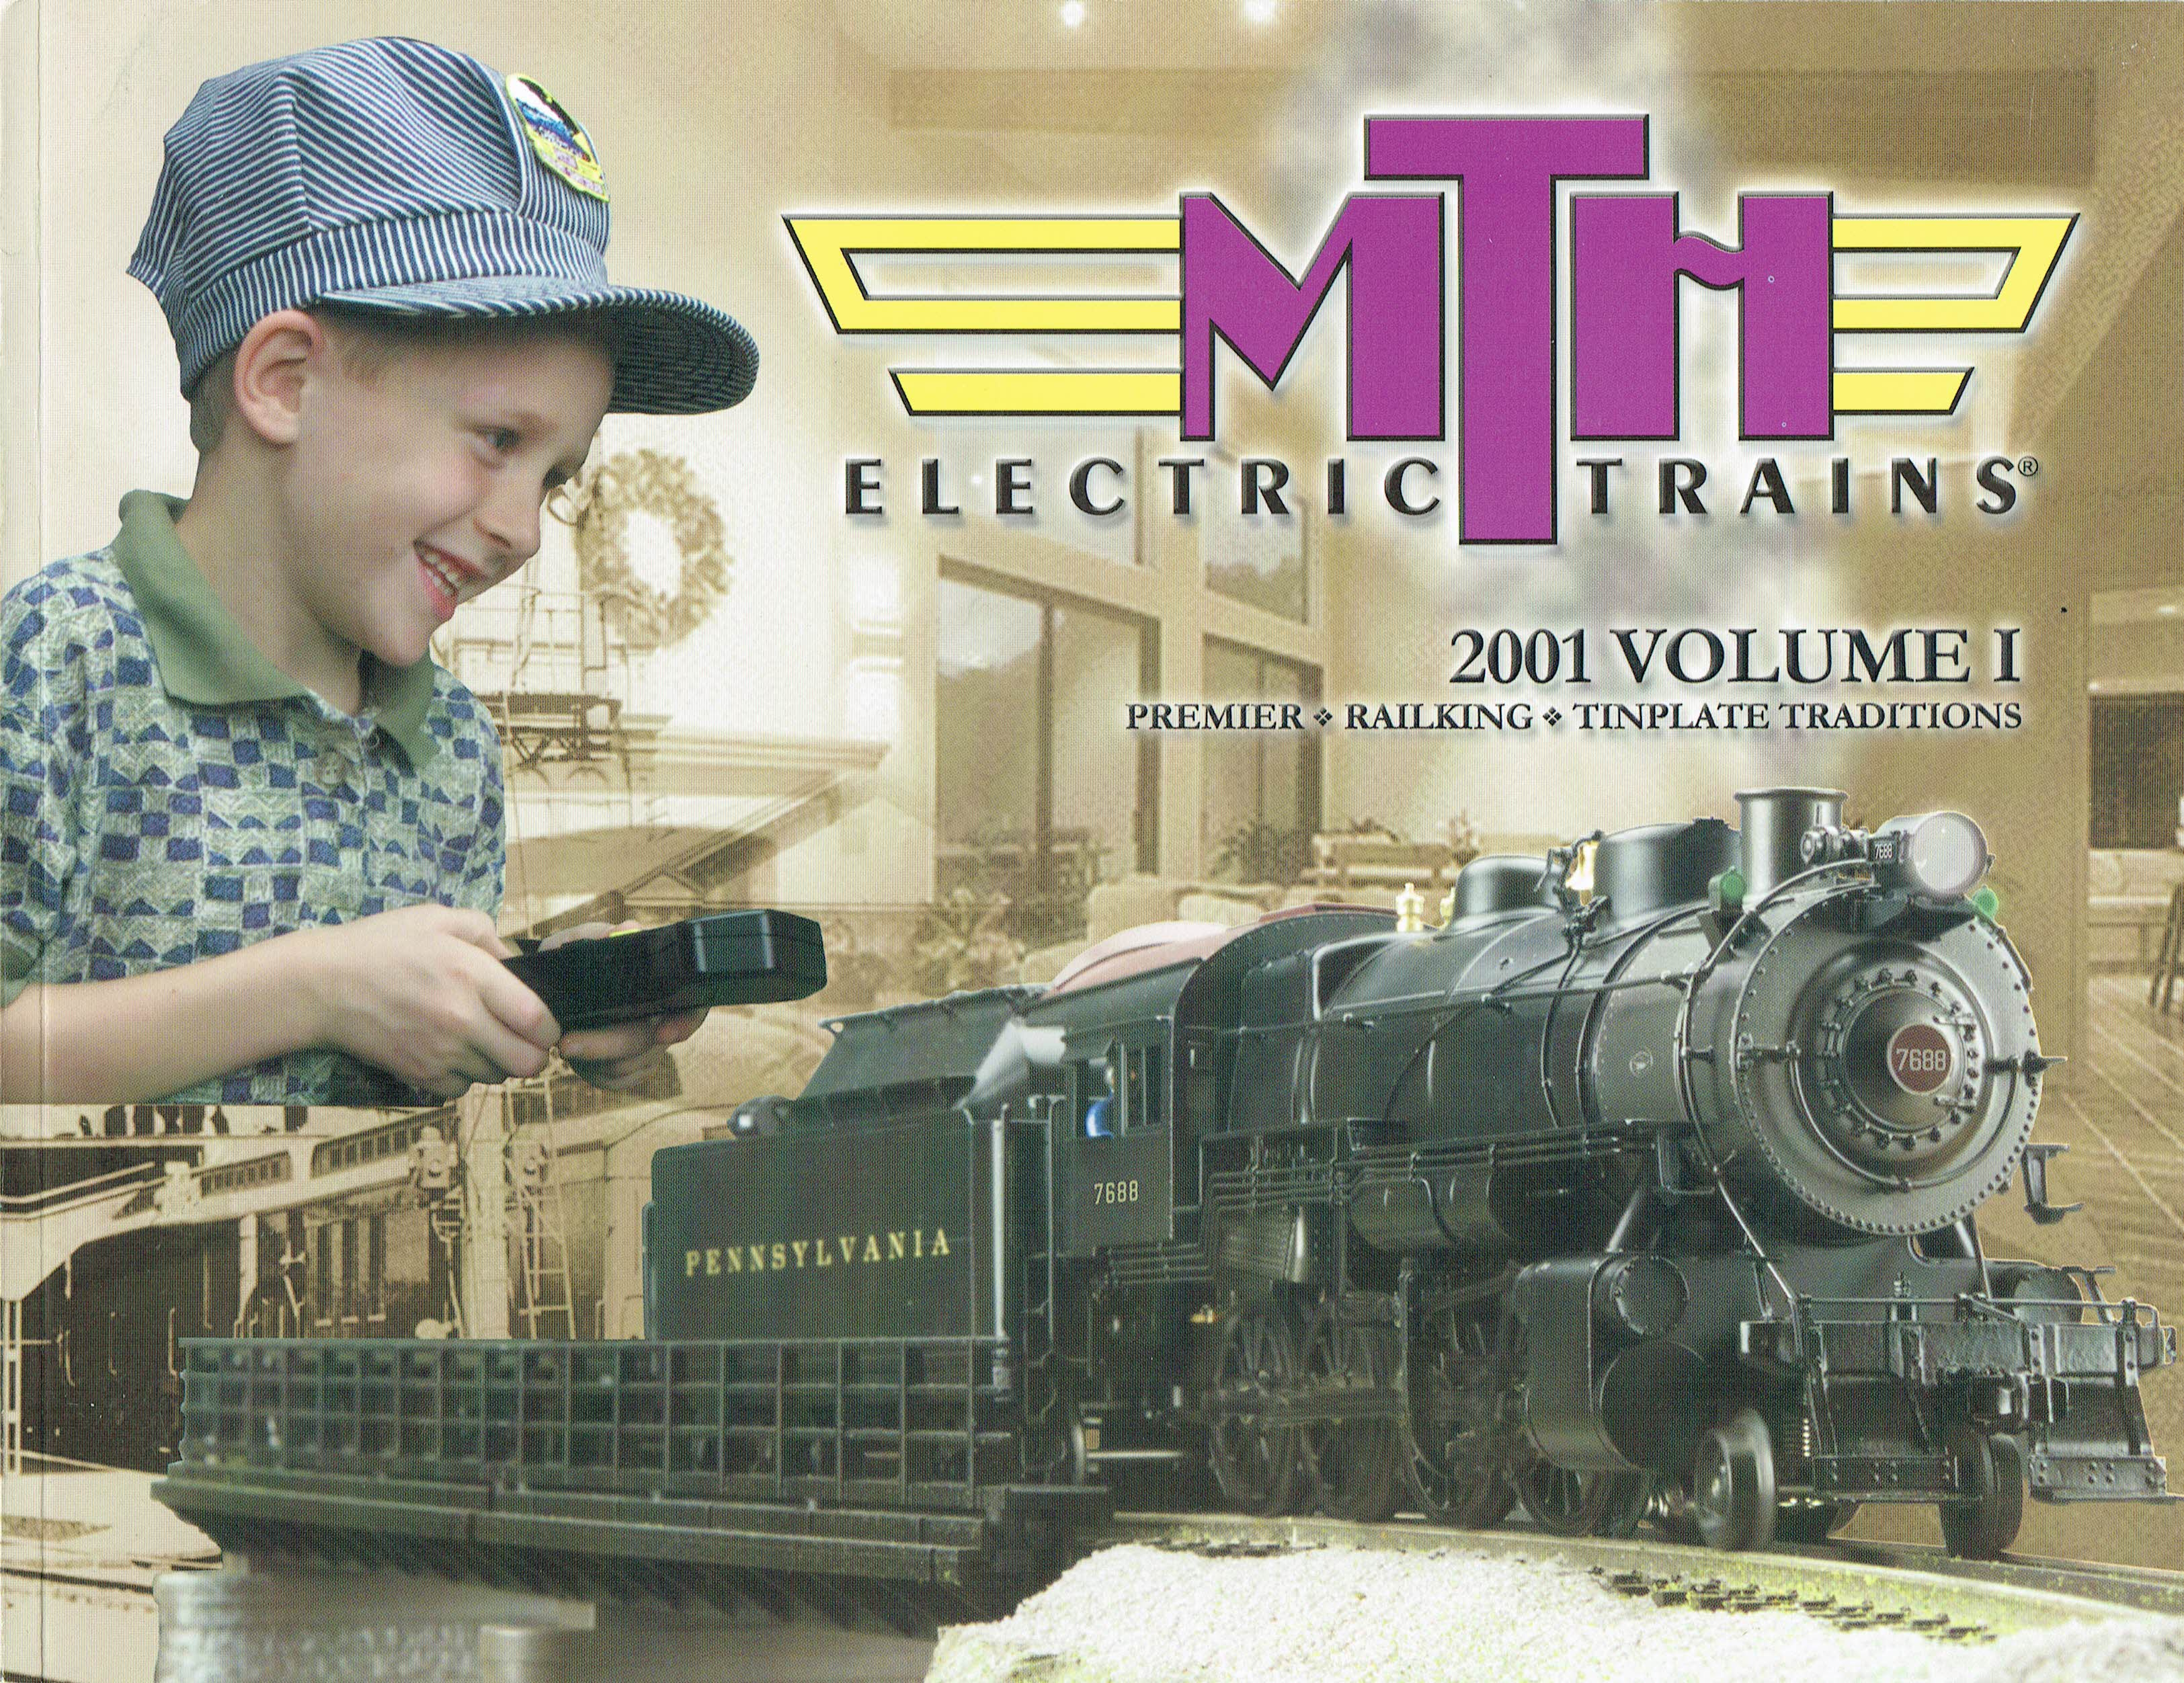 MTH 2001 Volume I Catalog image